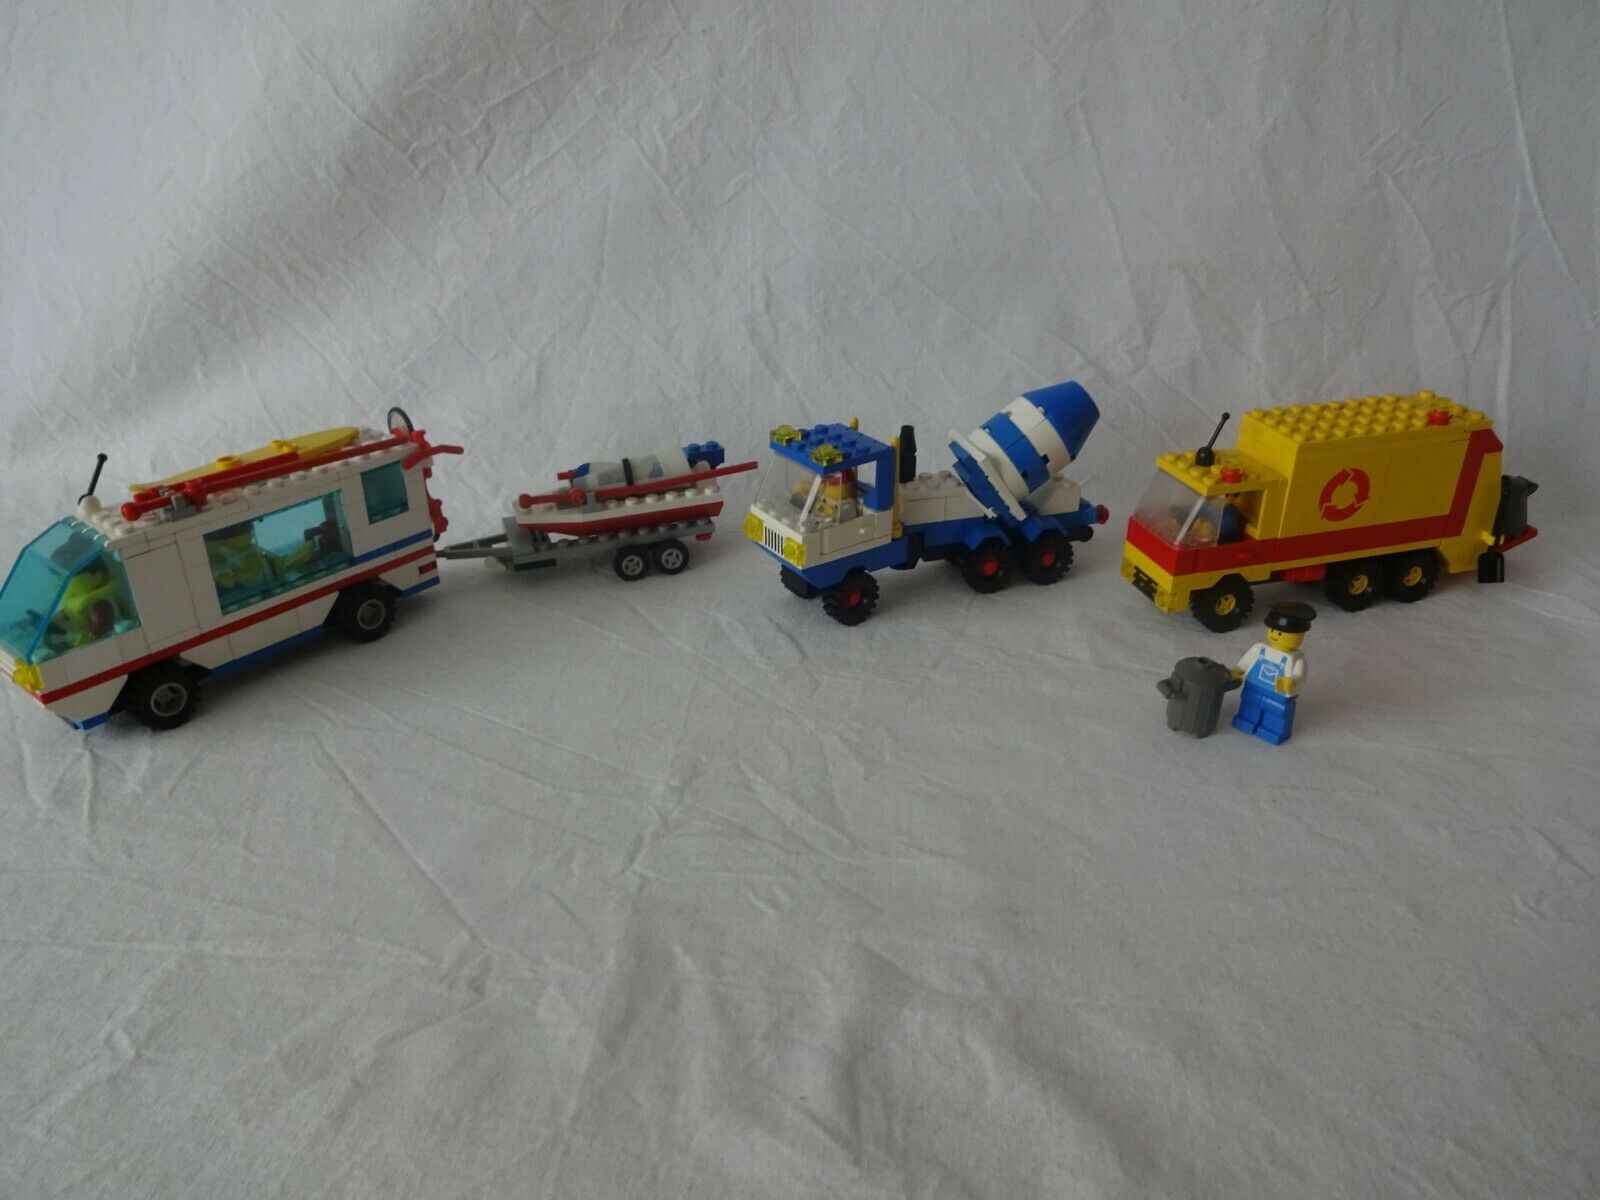 LEGO ® City 6351 SURF N'SAIL CAMPER, 6682 Cement Mixer, 6693 Refuse Collection T